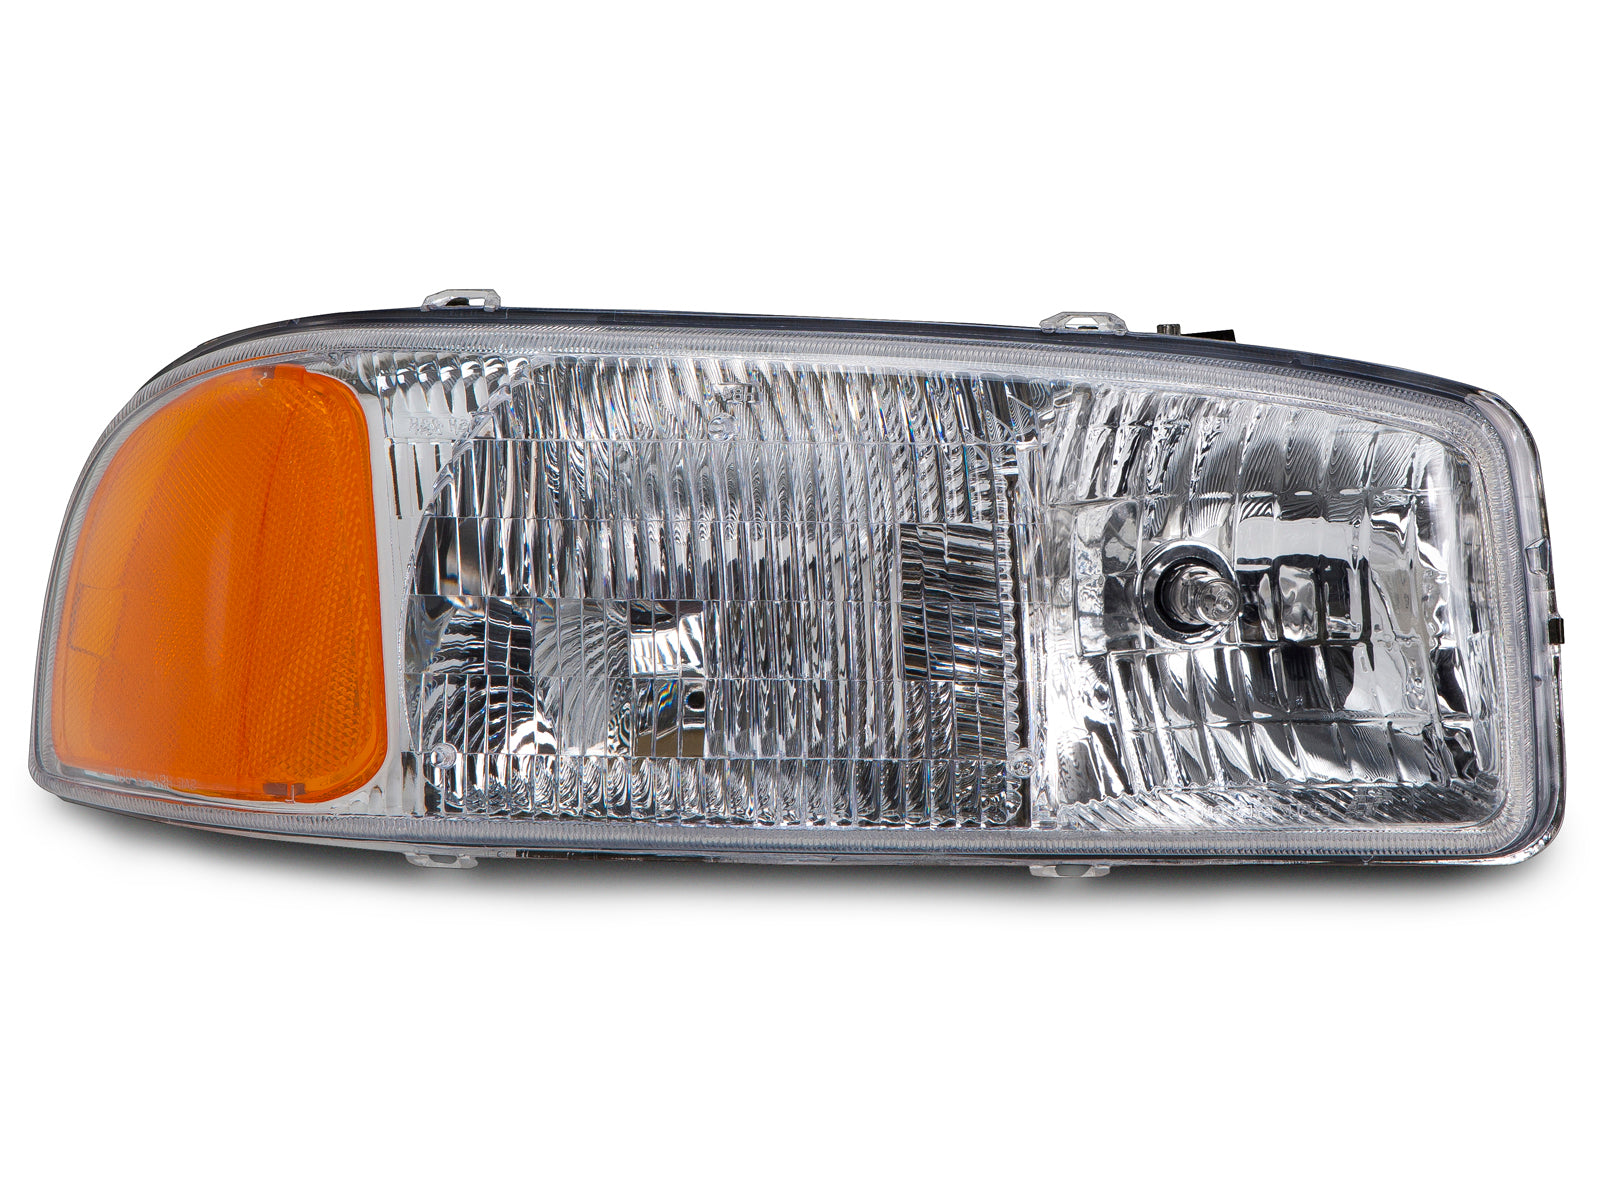 1999-2006 GMC Sierra/2000-2006 Yukon New Passenger Side Headlight (Does Not Fit C3 or Denali)